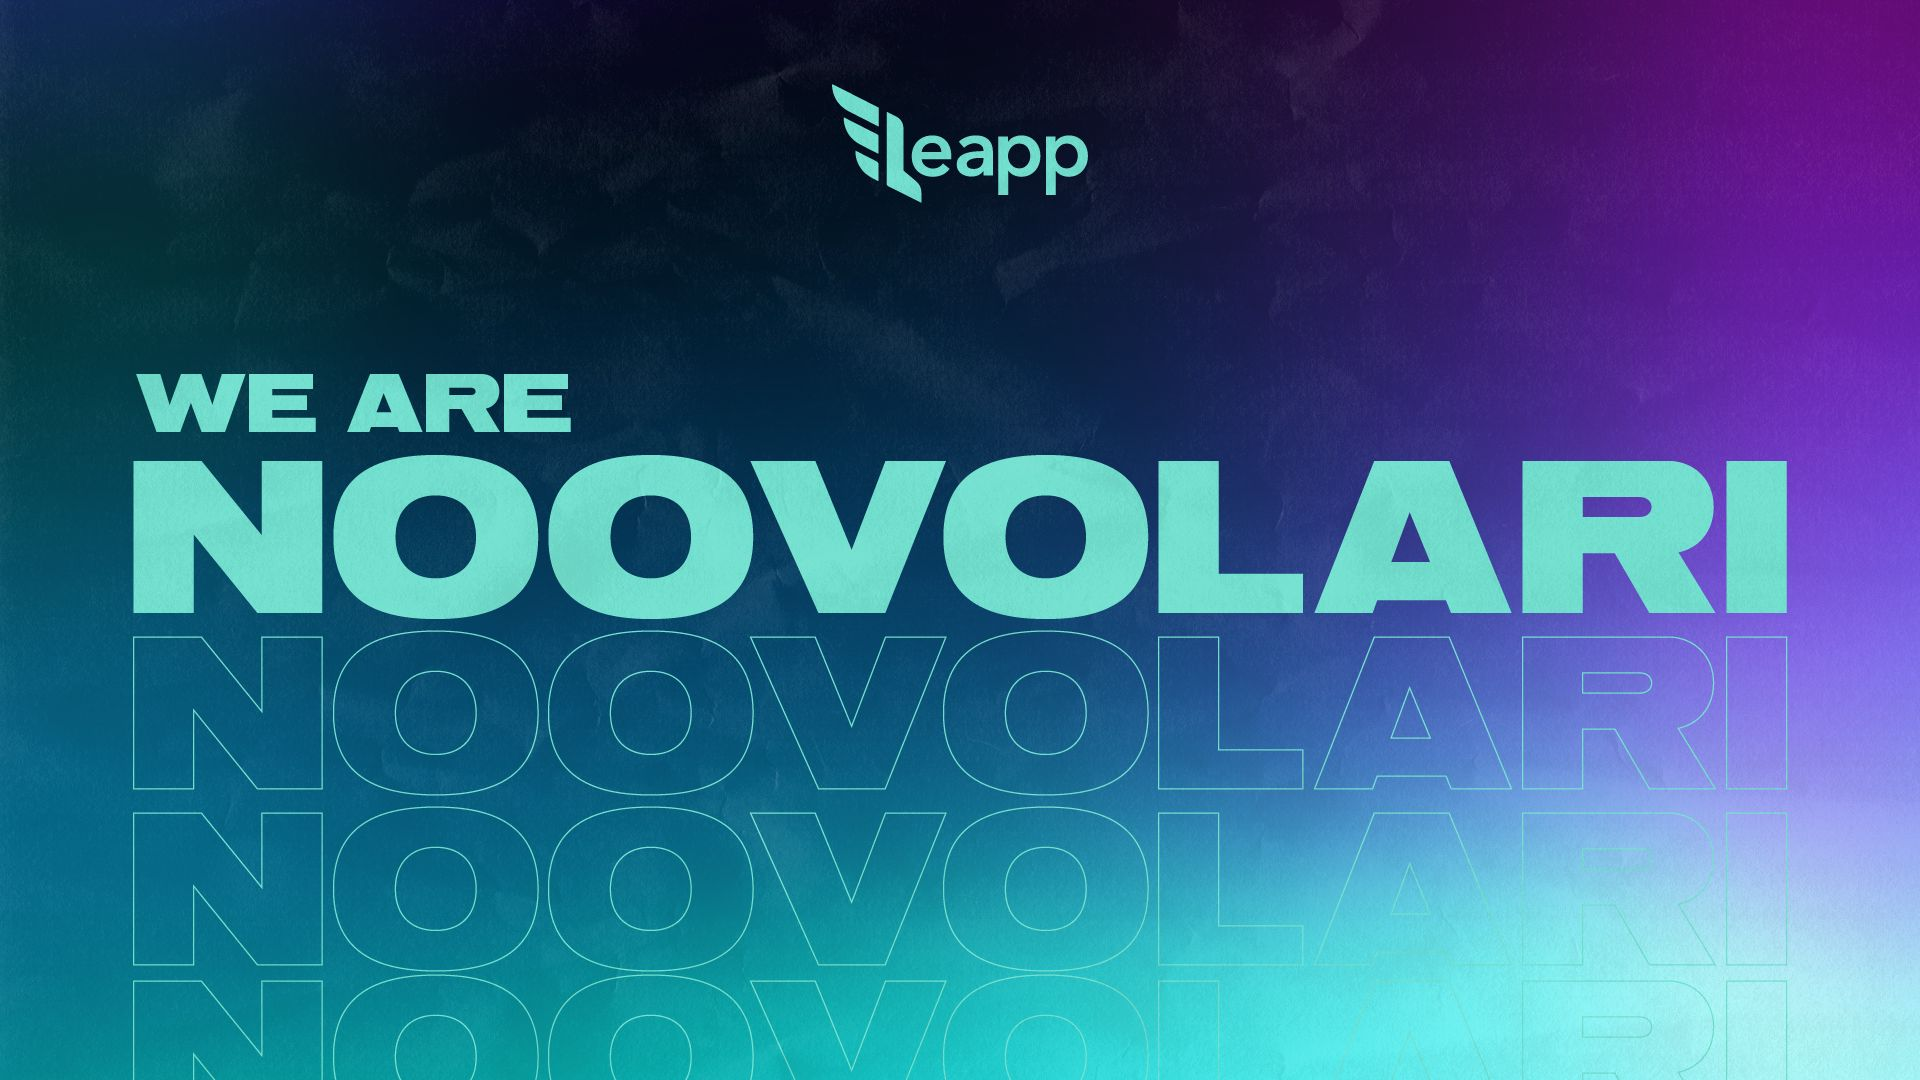 /road-to-noovolari-the-journey-of-a-tech-startup-9m1p37qf feature image